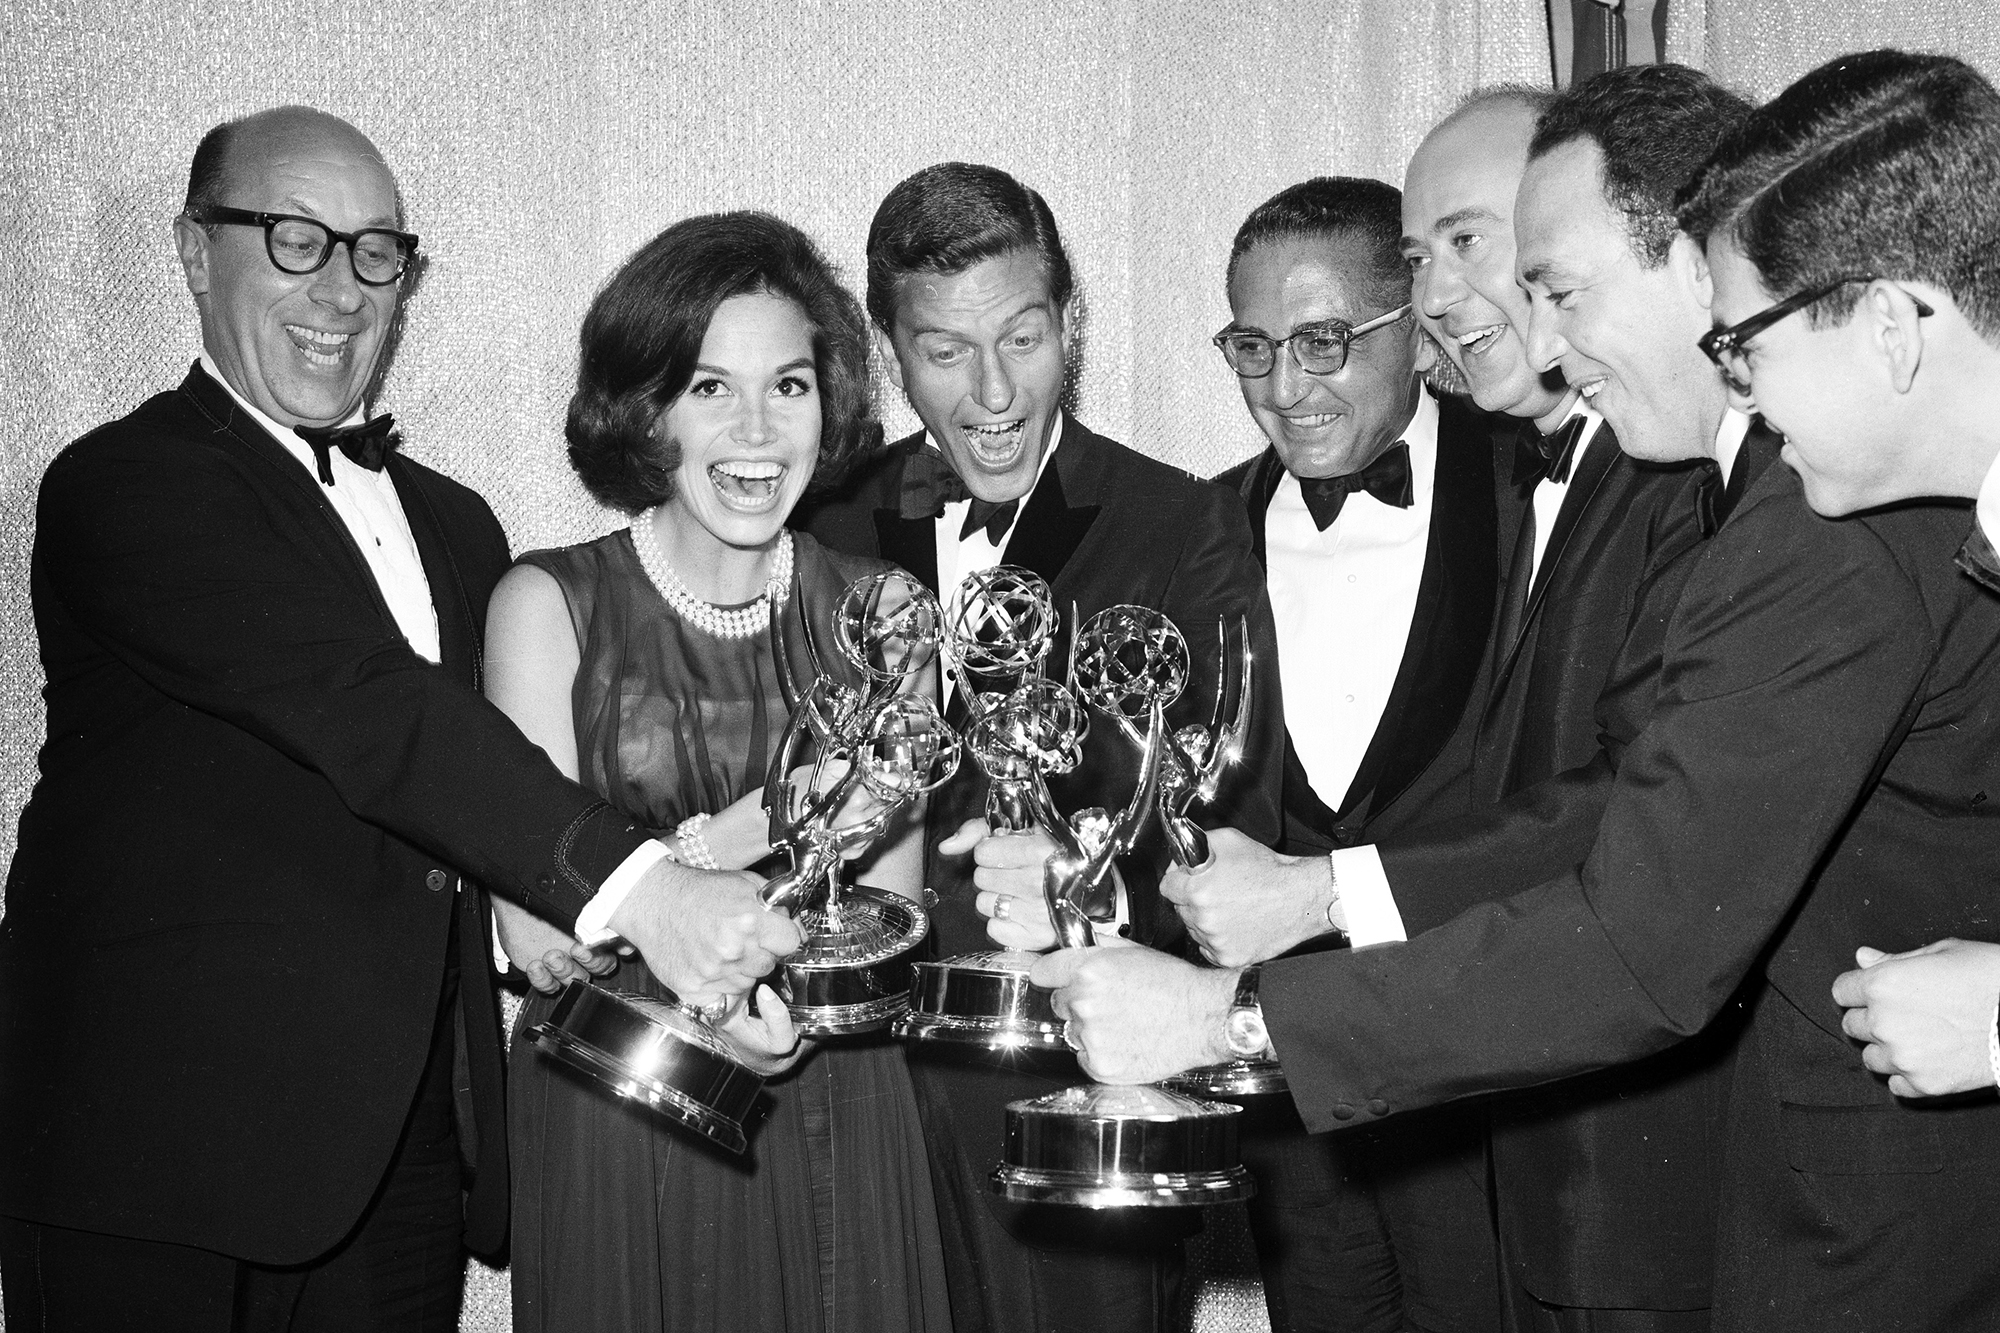 Mary Tyler Moore poses with co-stars of The Dick Van Dyke Show after receiving Emmy Awards c. 1962 in Los Angeles.